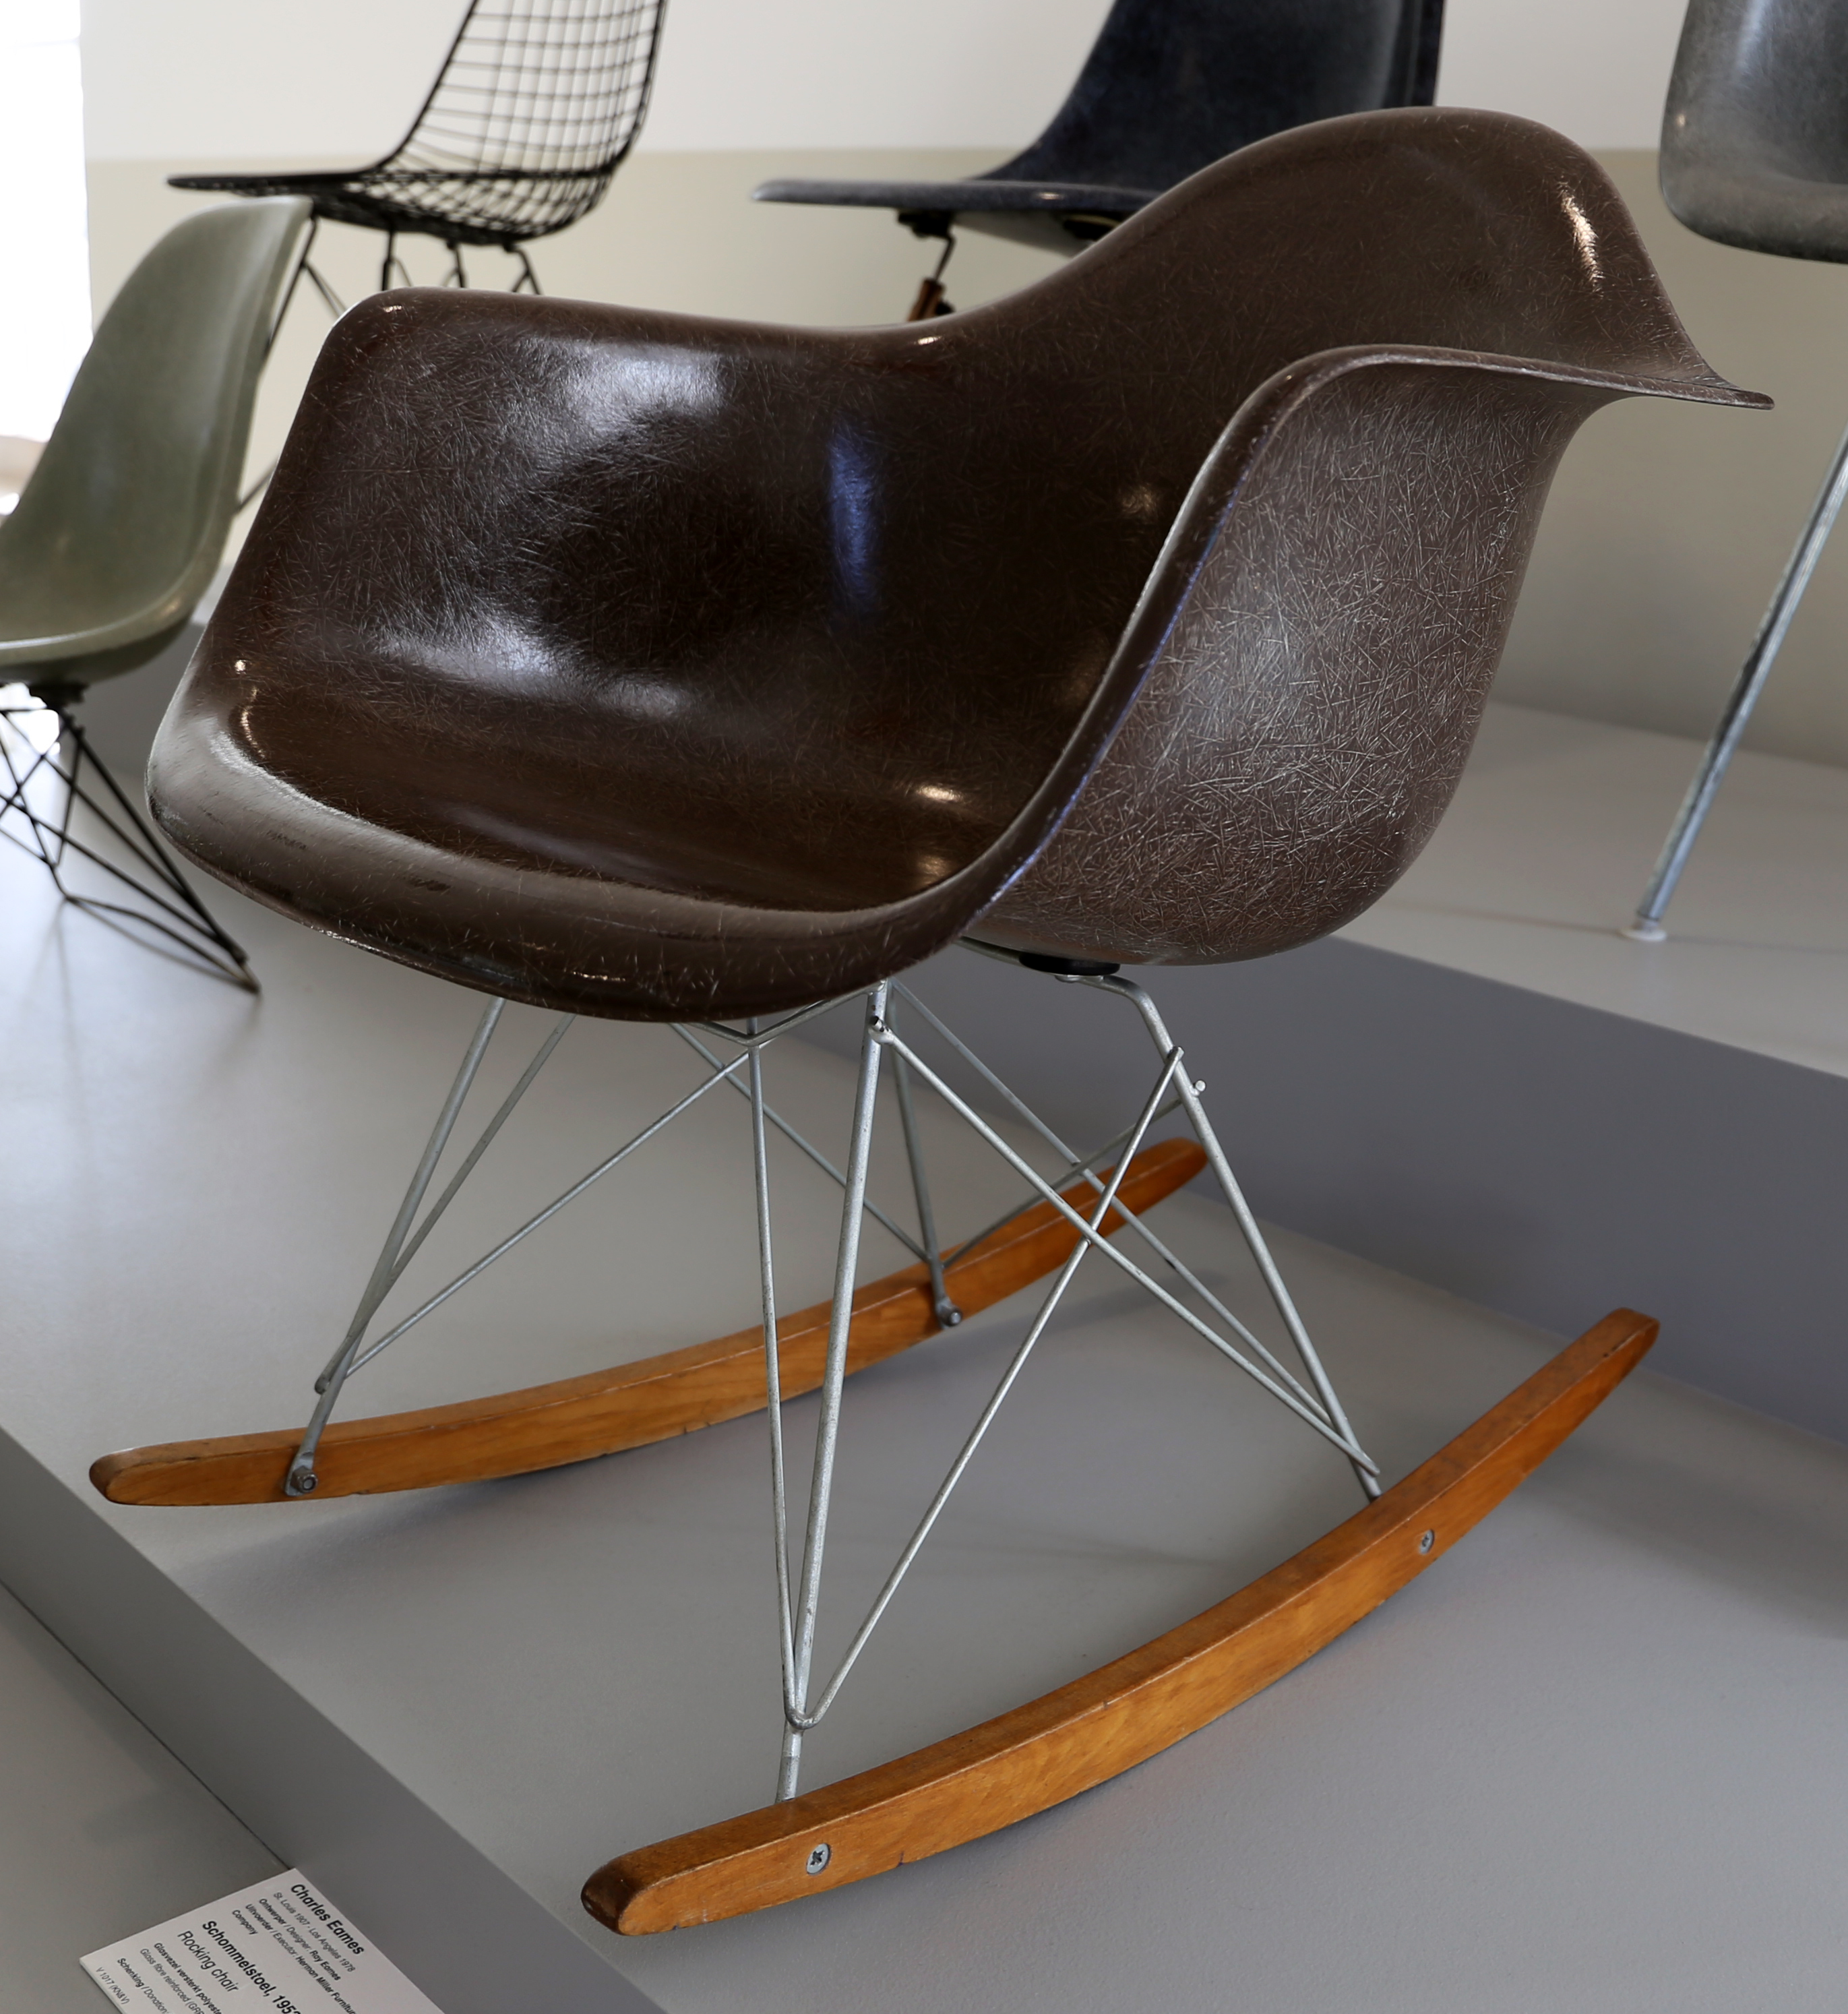 Beautiful sedia charles eames images amazing house for Eames replica schaukelstuhl